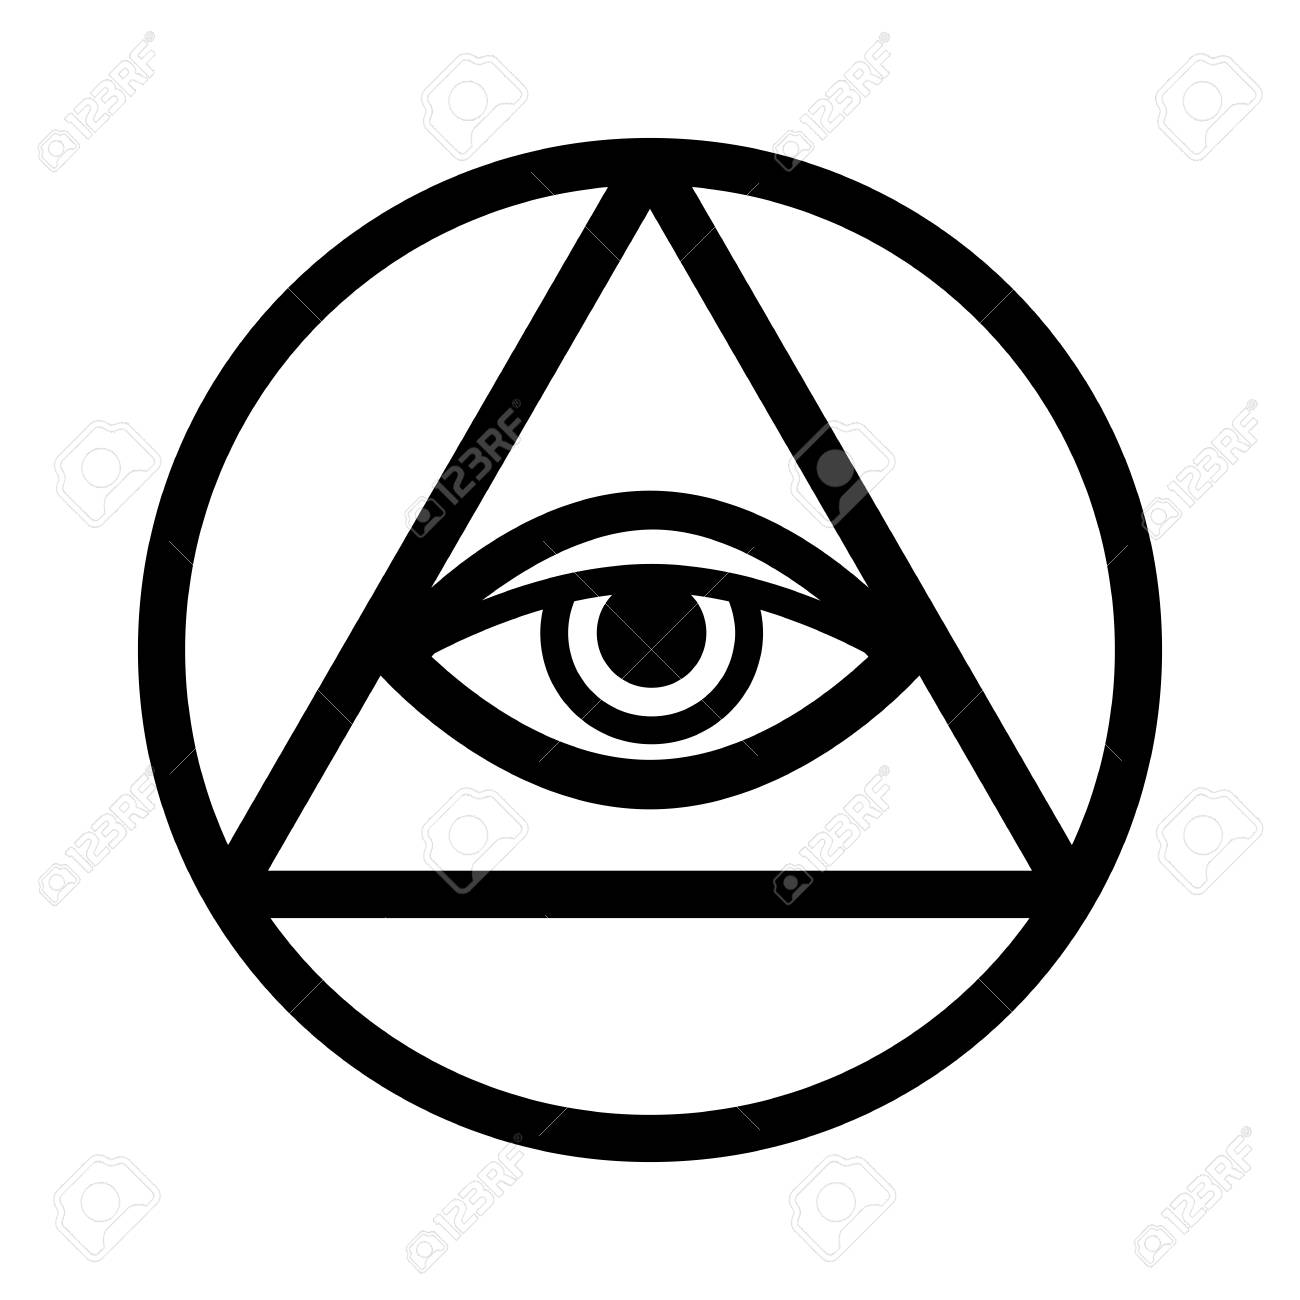 Alpha and omega stock photos royalty free business images all seeing eye of god the eye of providence eye of omniscience biocorpaavc